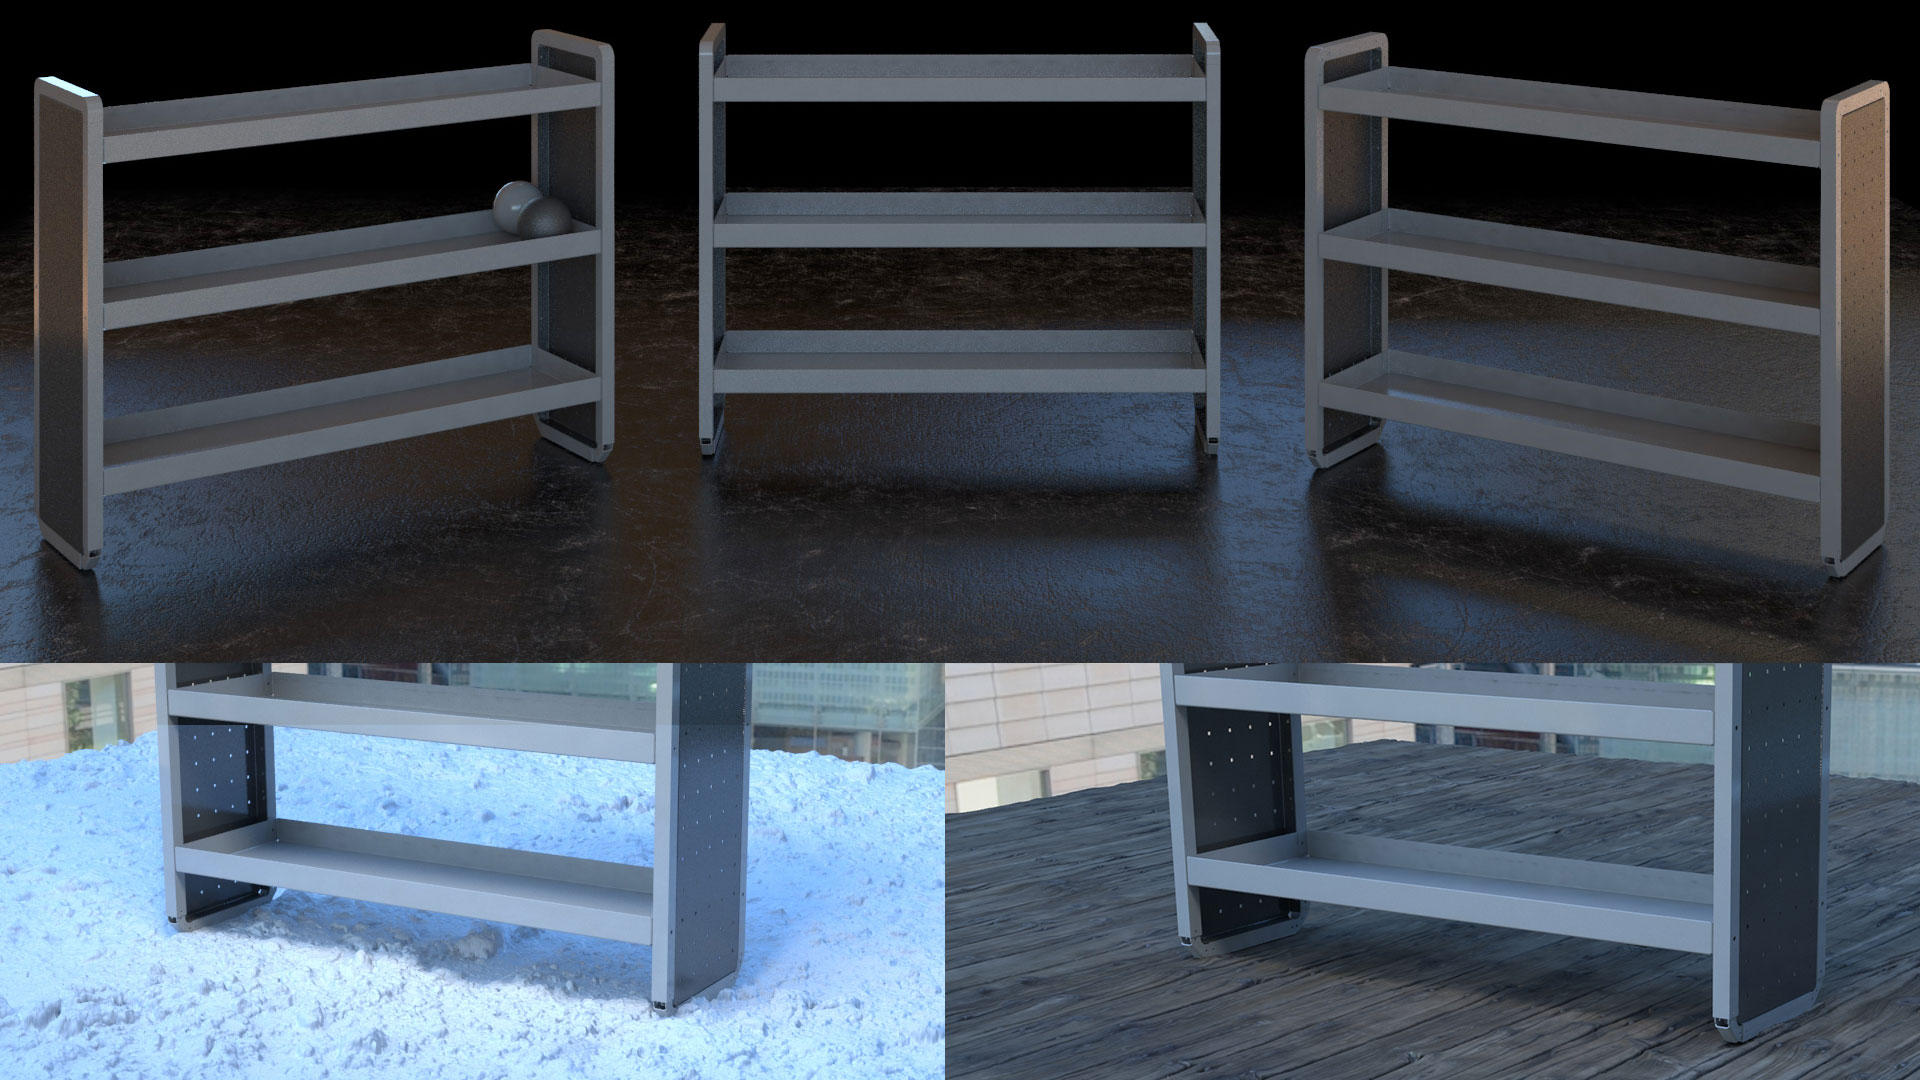 shelving products in different CGI photo shoots